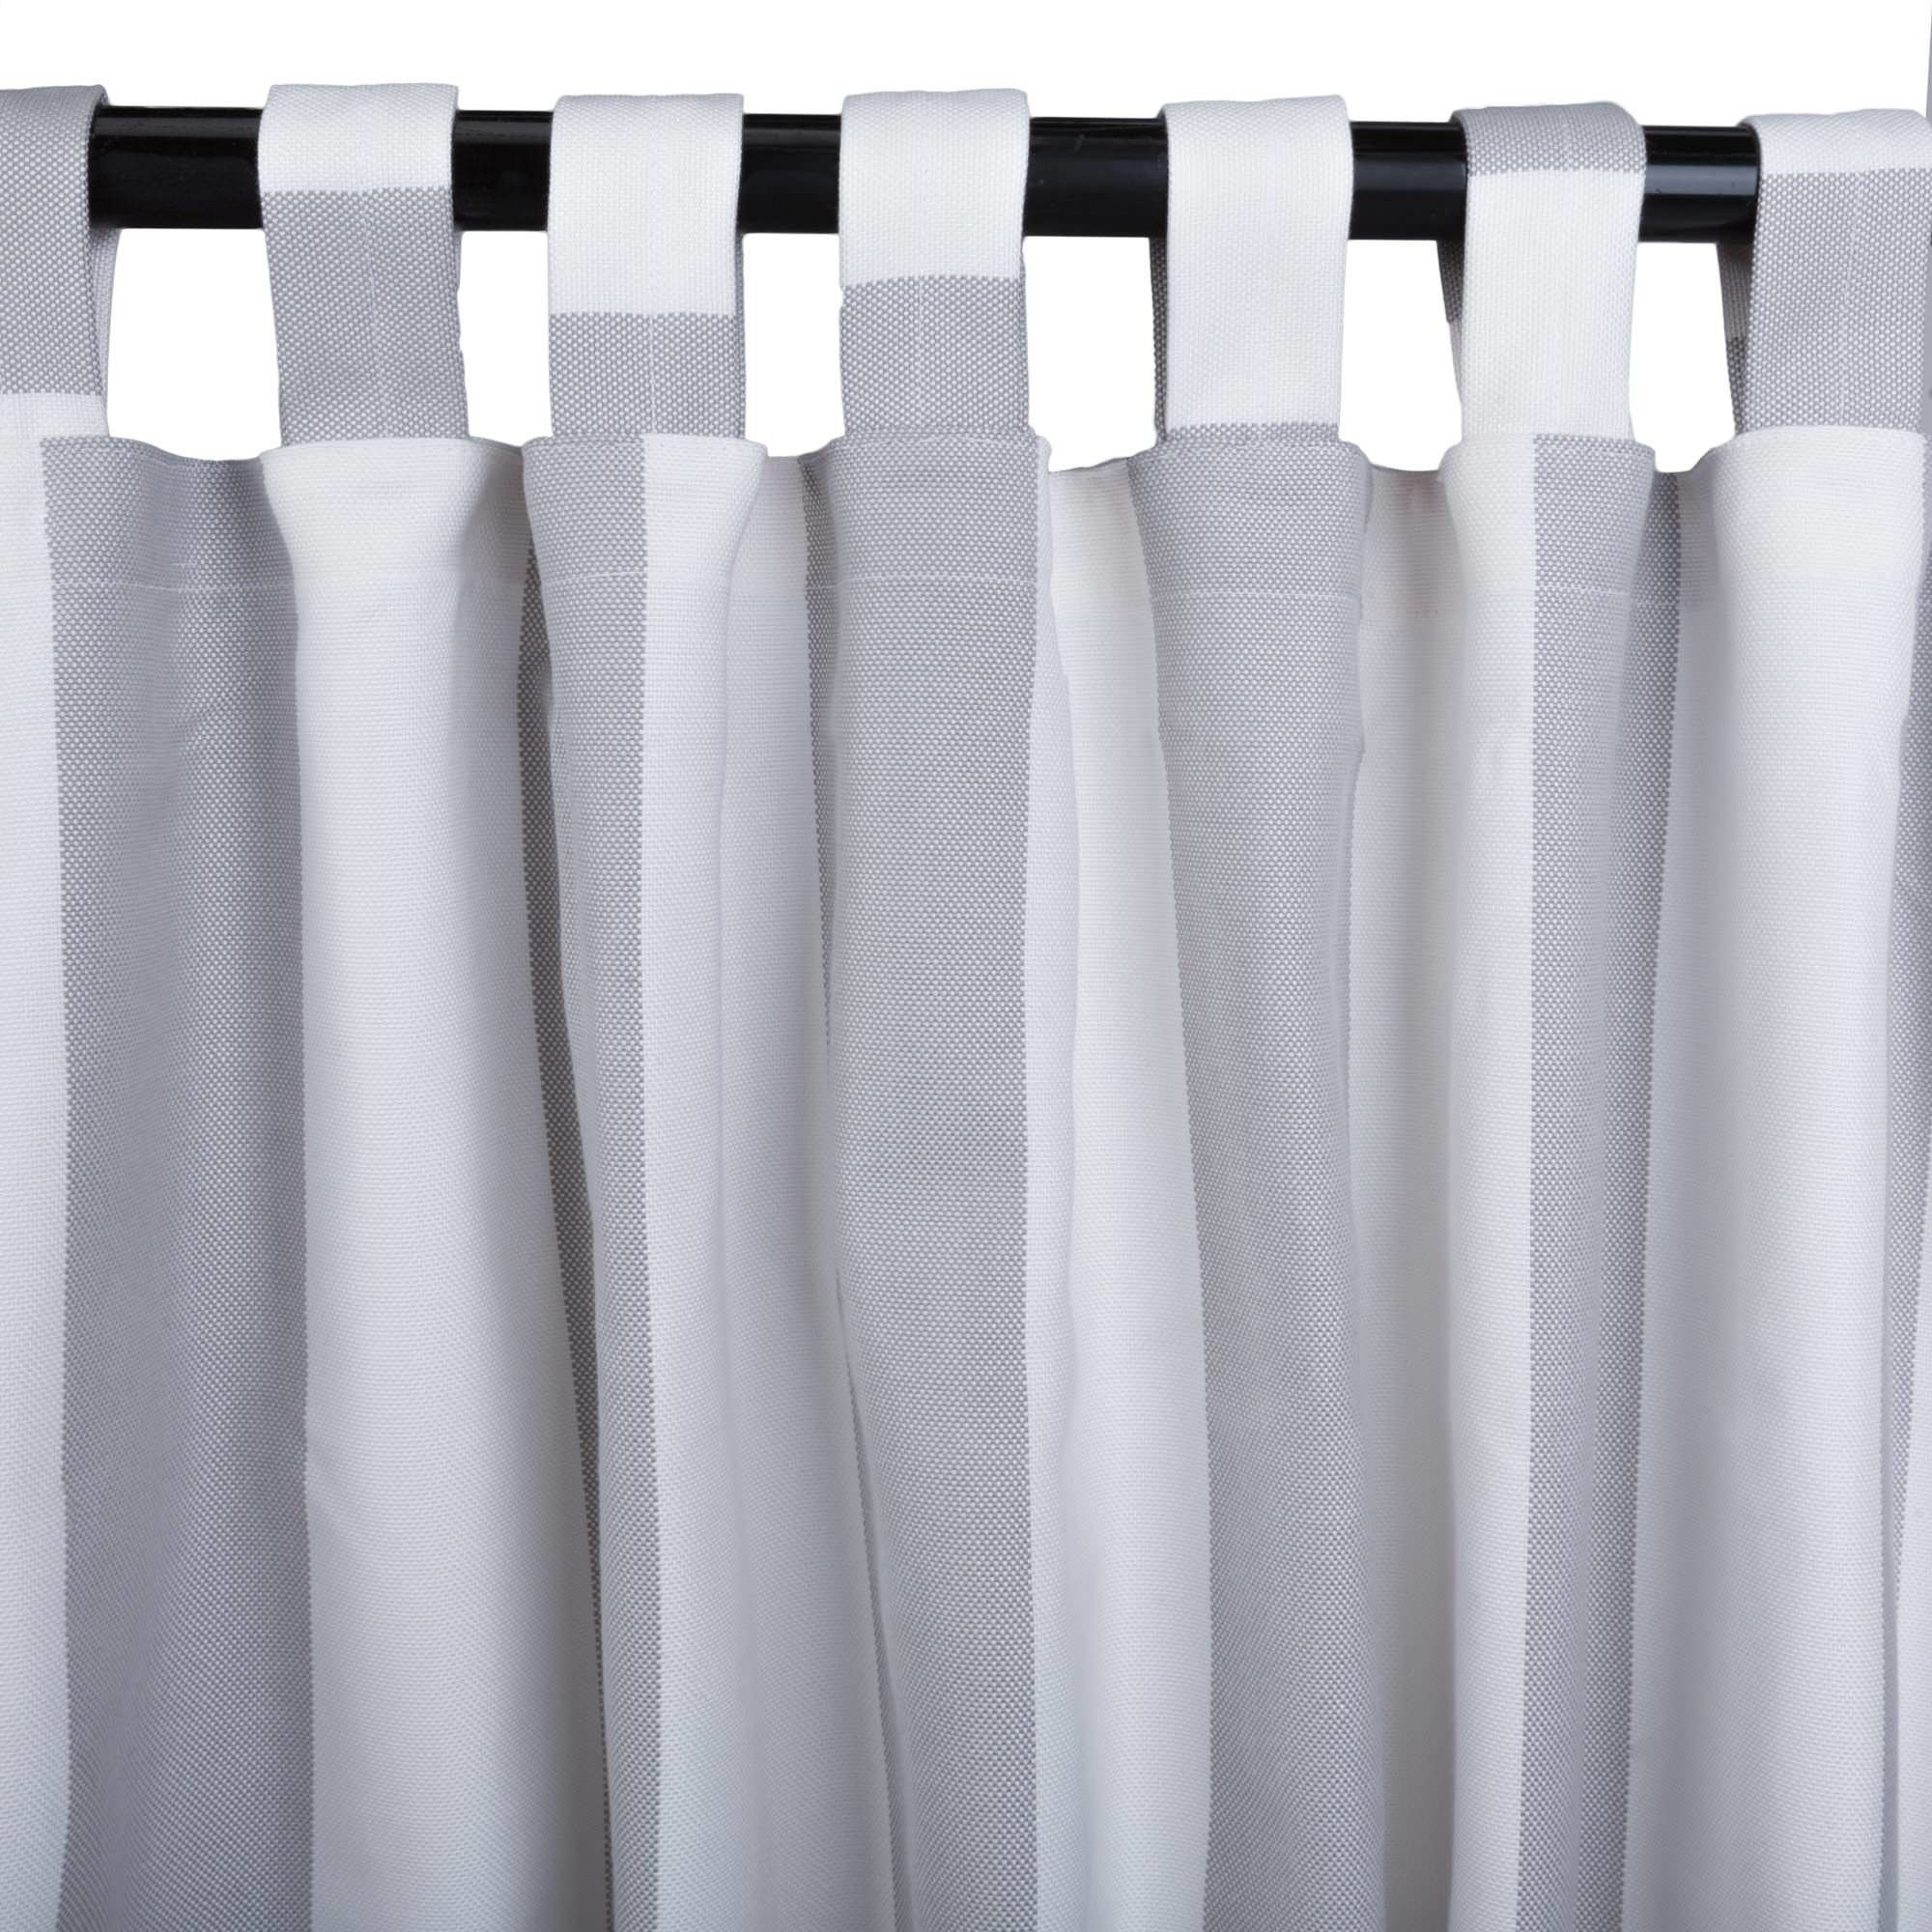 Outdoor Single Curtain Panel Sunbrella Outdoor Curtains Outdoor Curtain Panels Outdoor Curtains